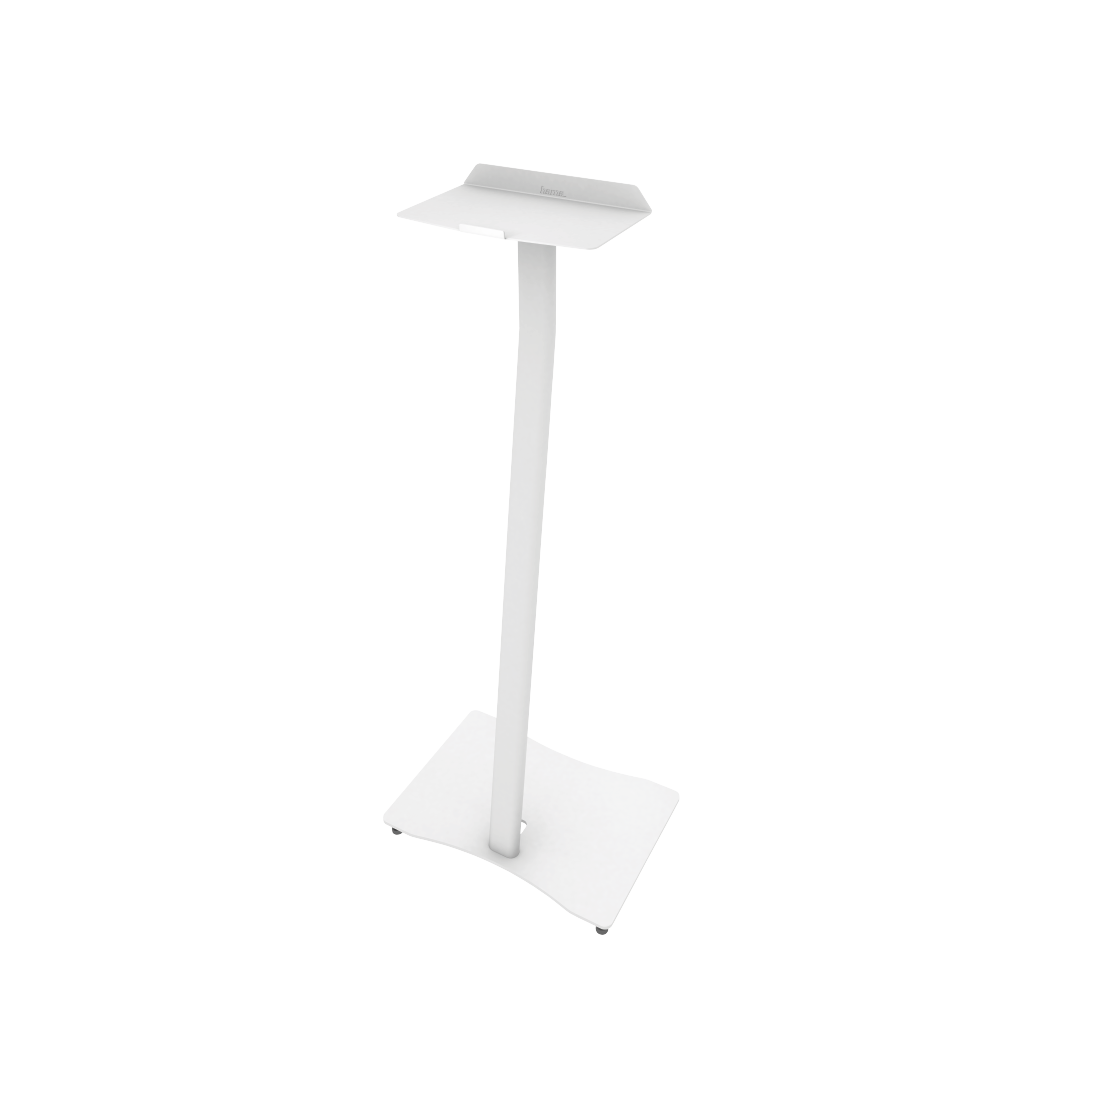 sonos play 5 stand white